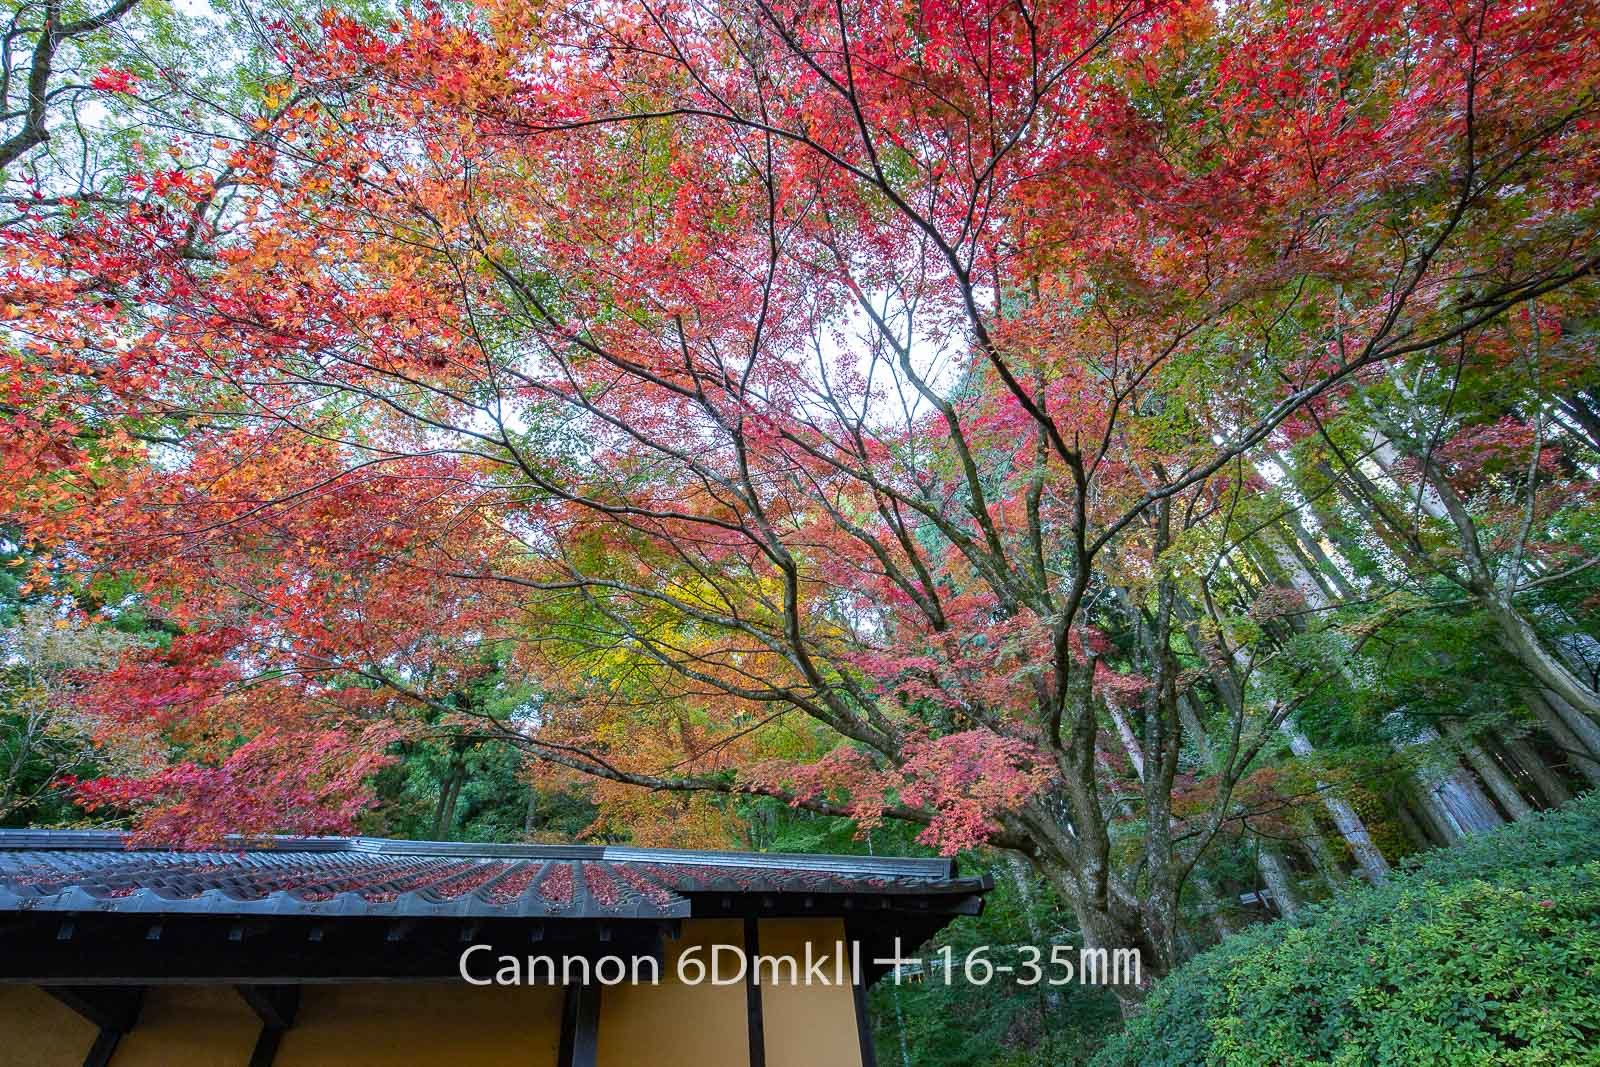 181103 英彦山紅葉6ⅮⅡ-02 Canon EOS 6D Mark II ISO 200 16 mm 6240 x 4160